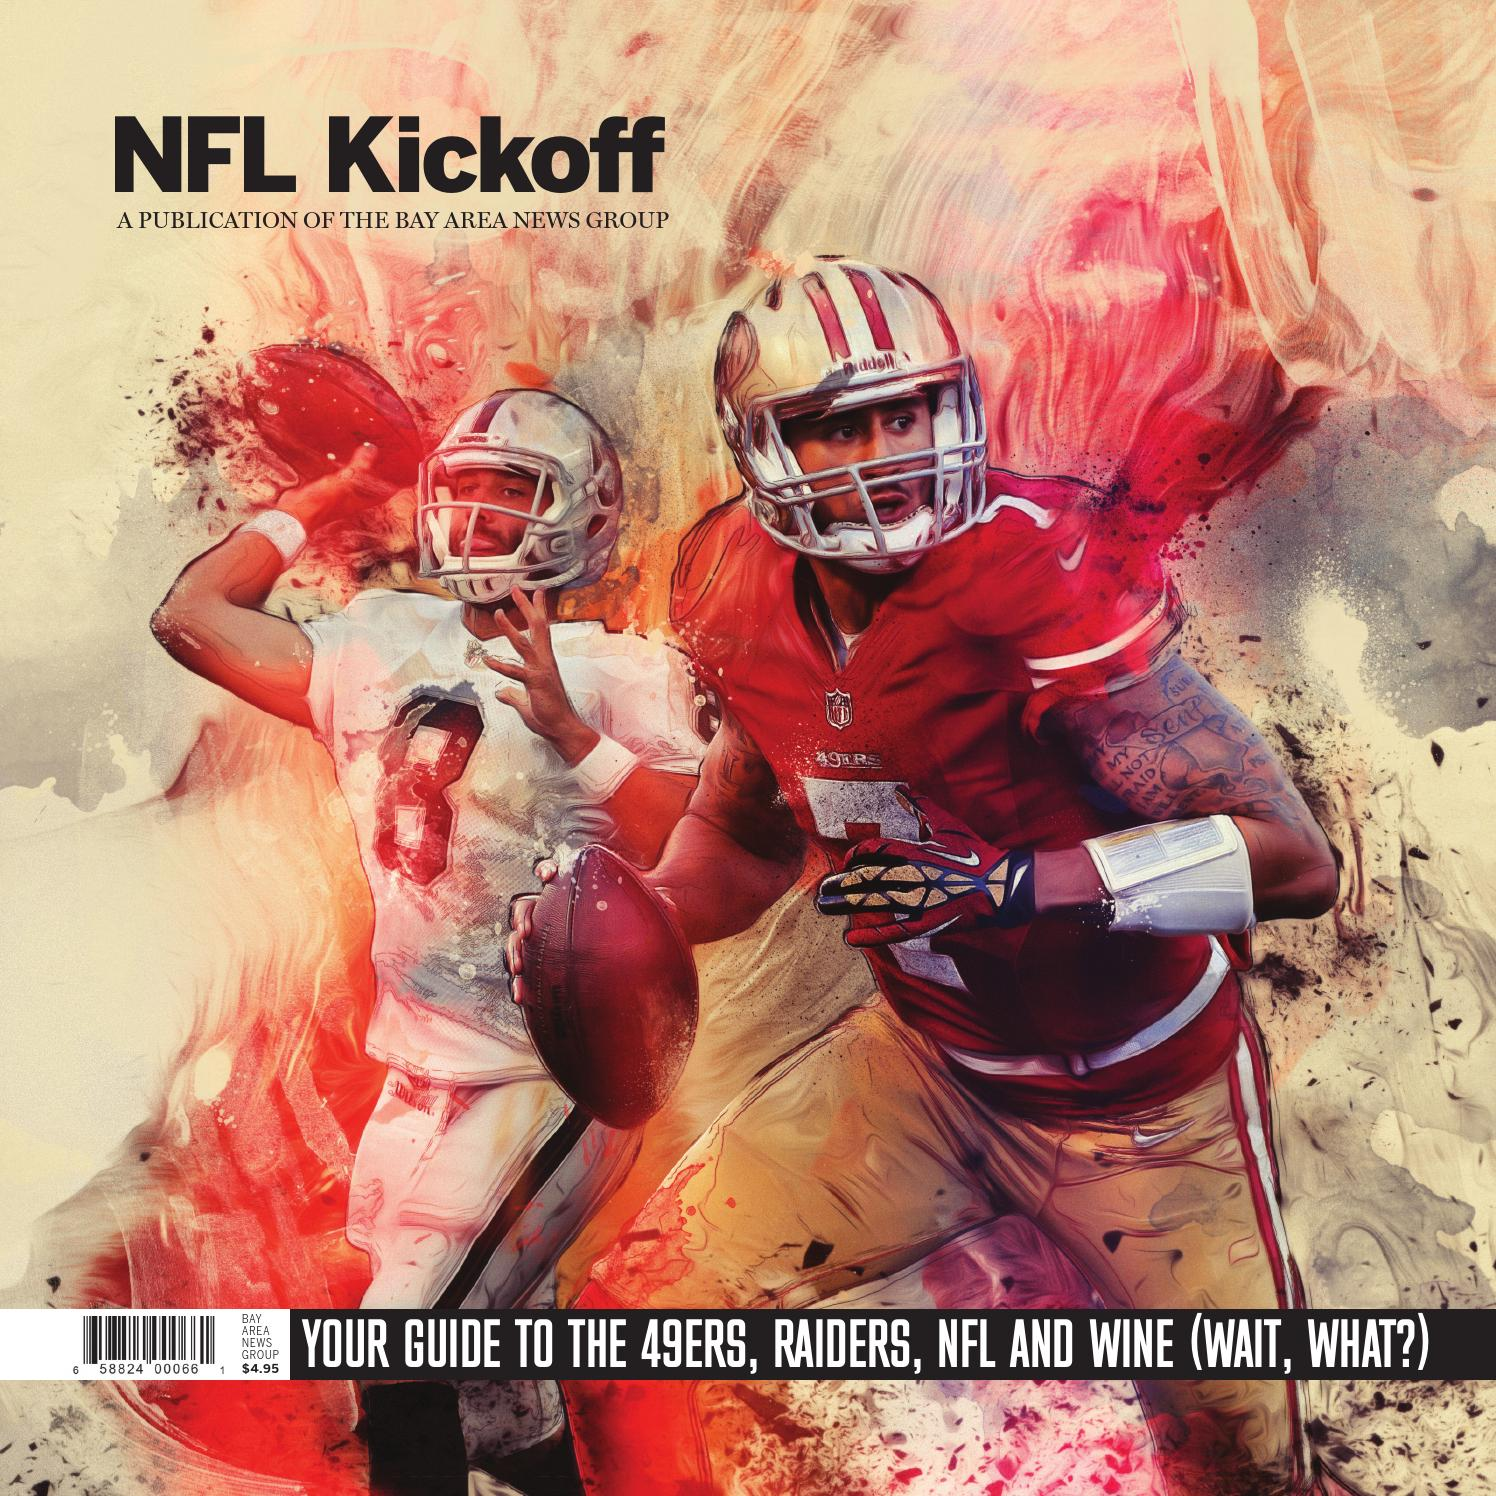 cc2d0ed8b NFL Preview 2014 by Tim Ball - issuu